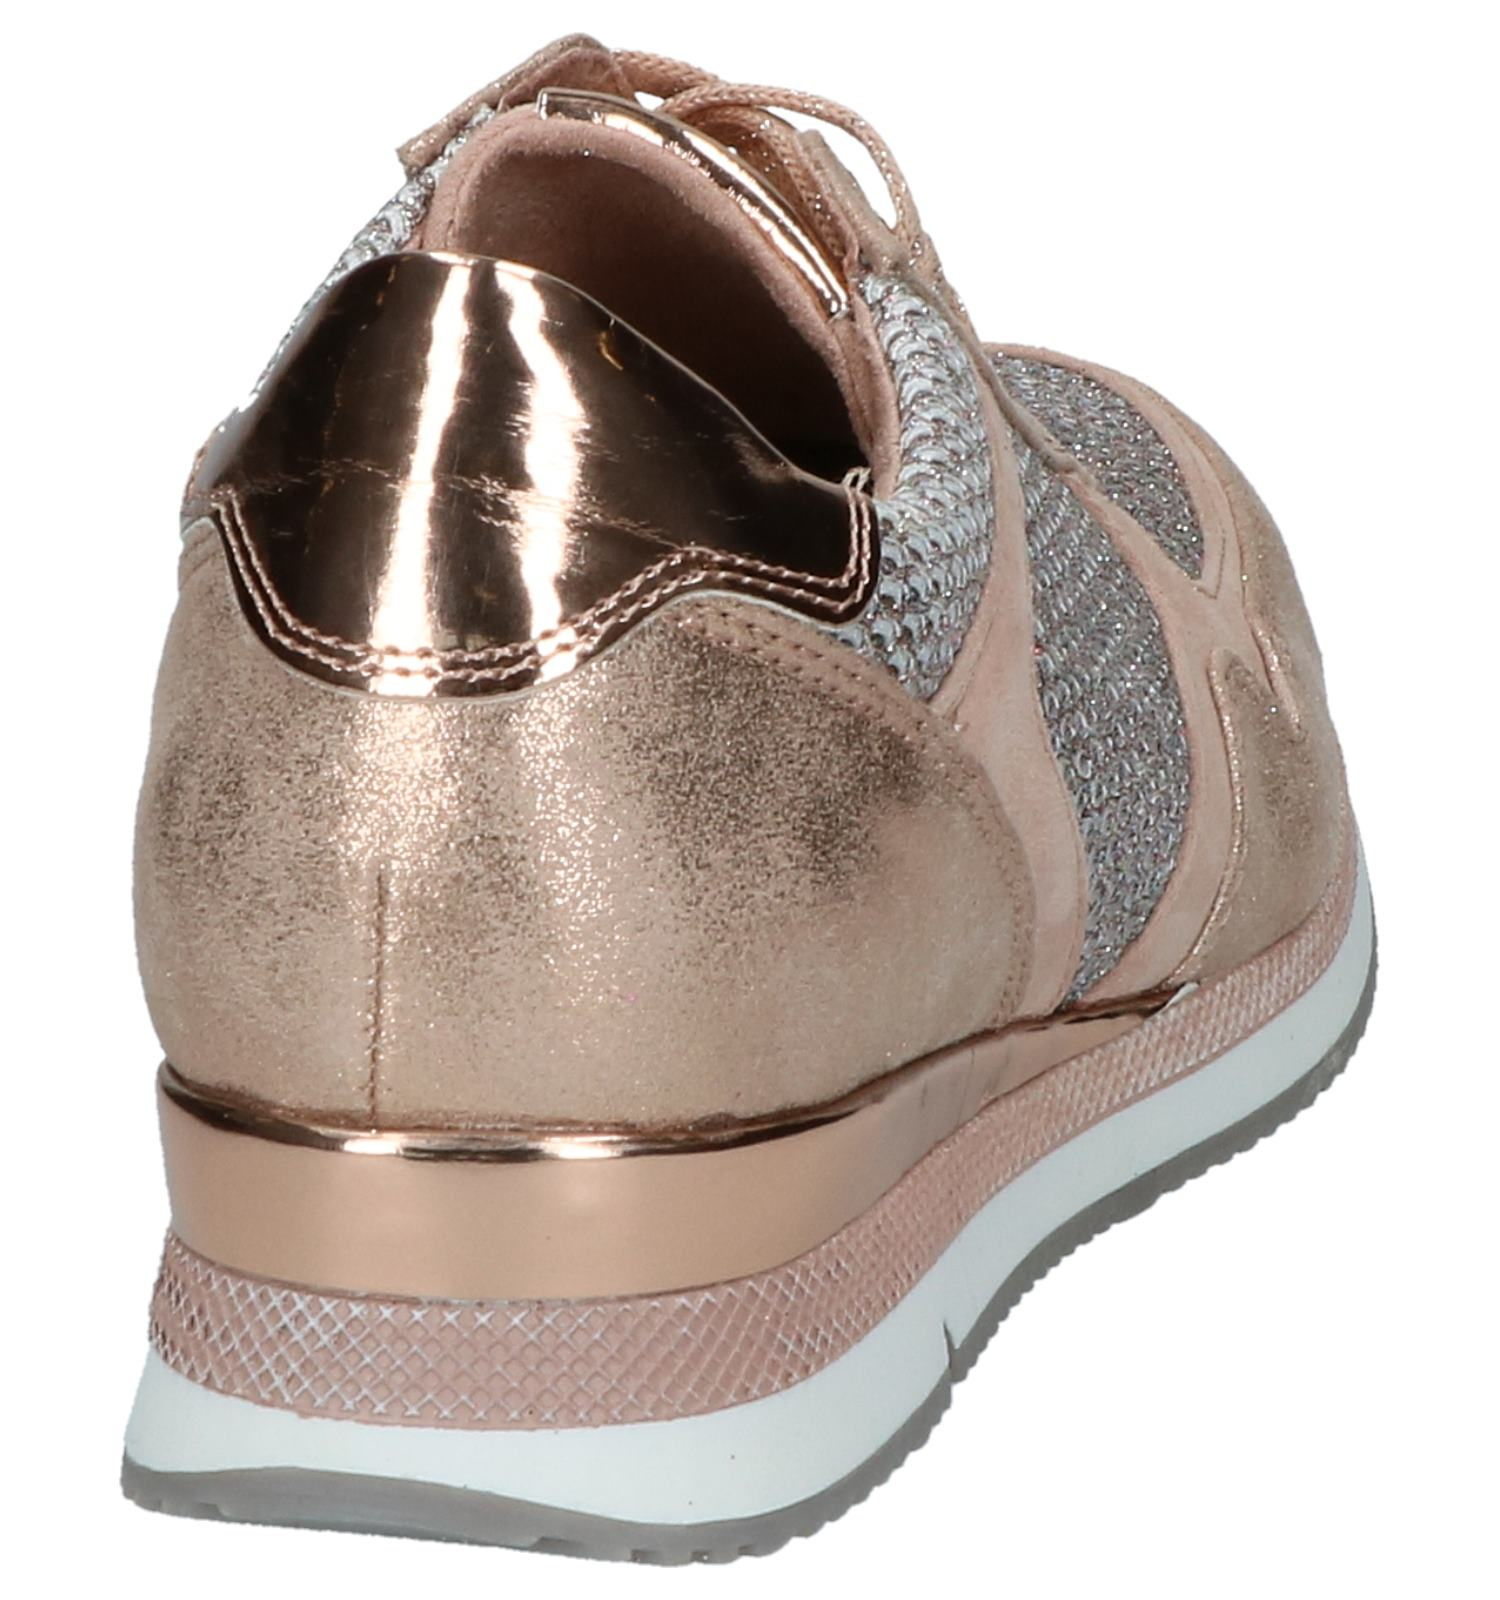 outlet store 04b33 de0e7 Rose Gold Sneakers met Glitters Marco Tozzi | TORFS.BE ...